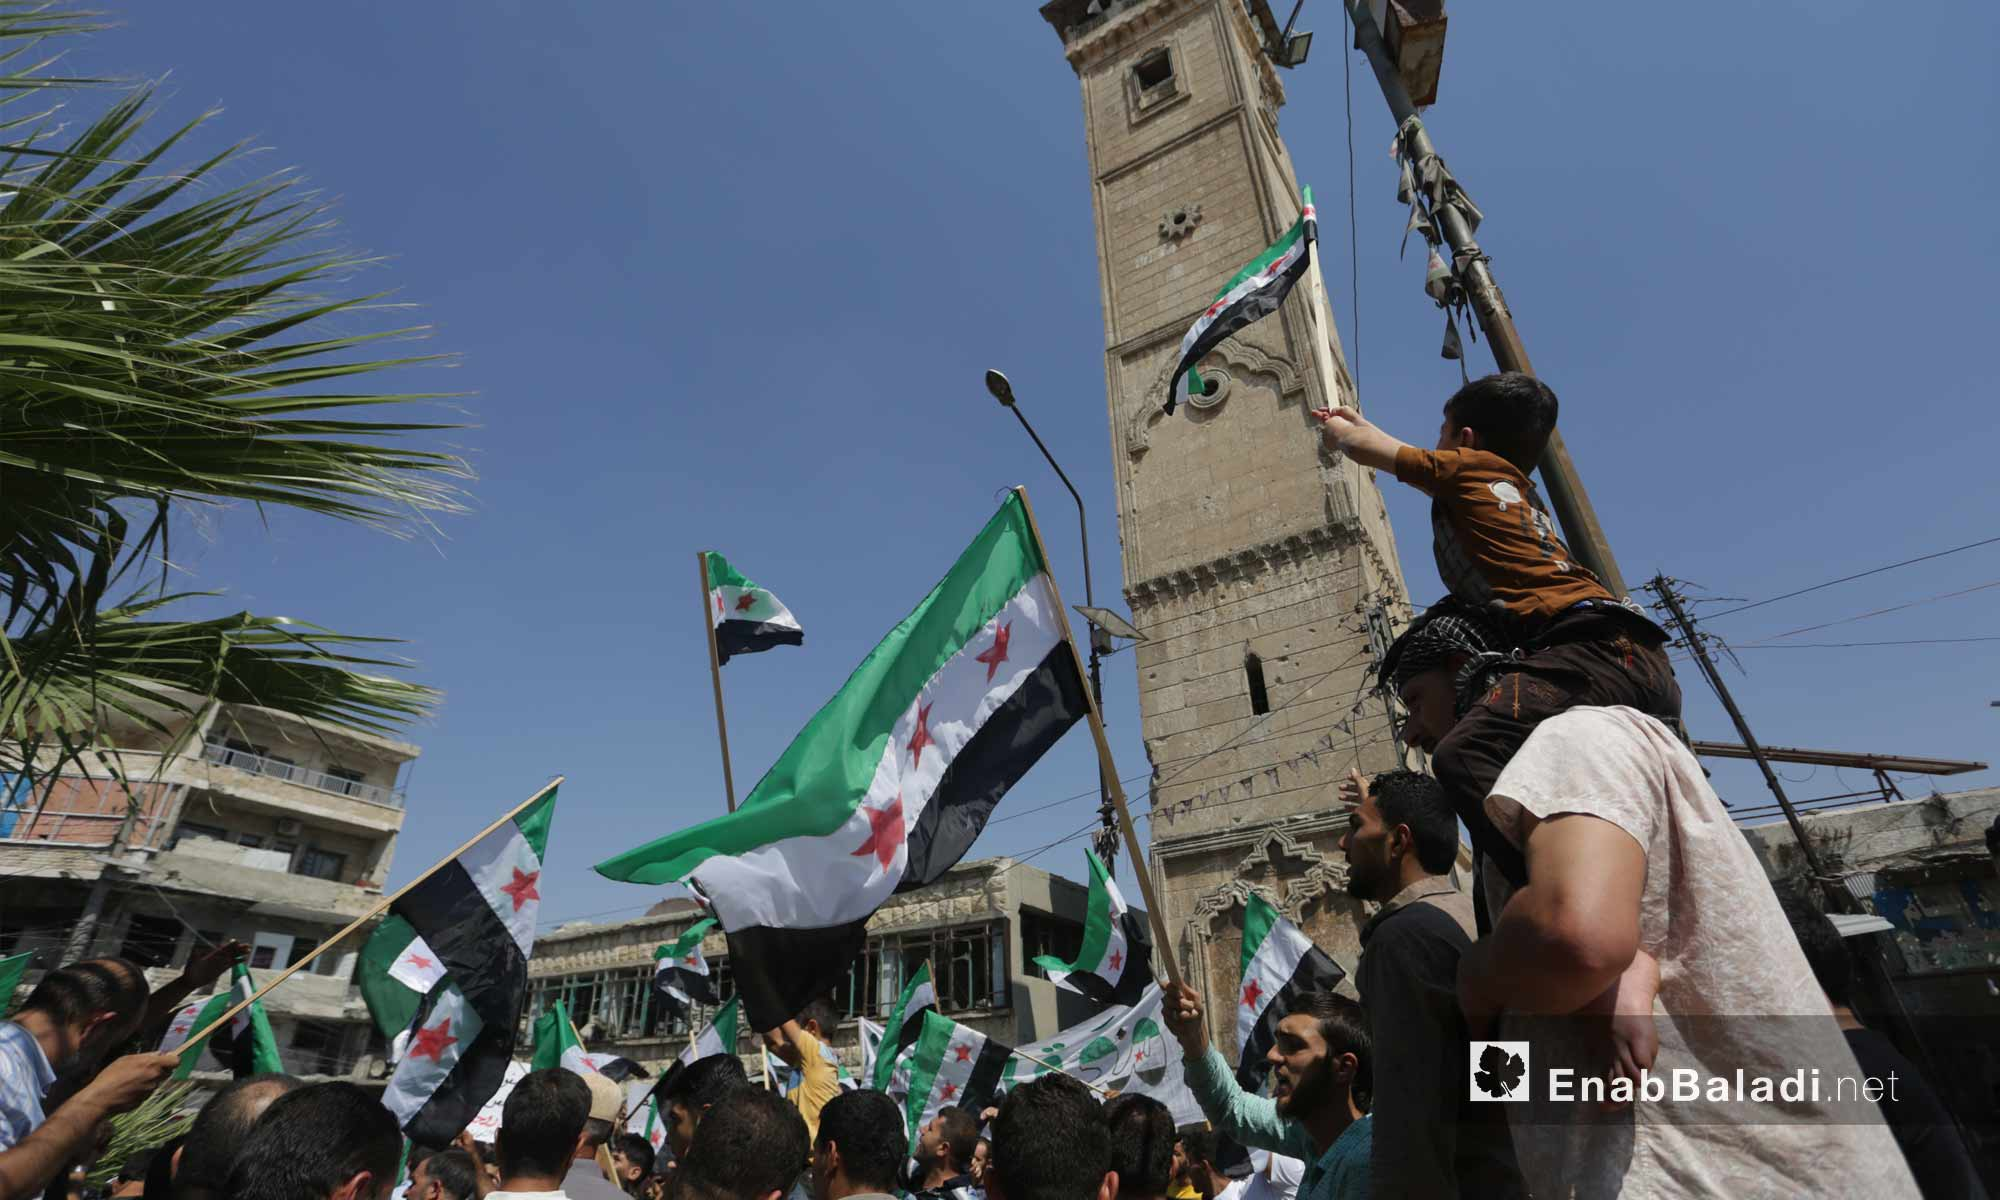 Demonstrators in Maarat al-Numan in Idlib countryside reject the Sochi Agreement and want the downfall of the Syrian regime - 6 September 2019 (Enab Baladi)